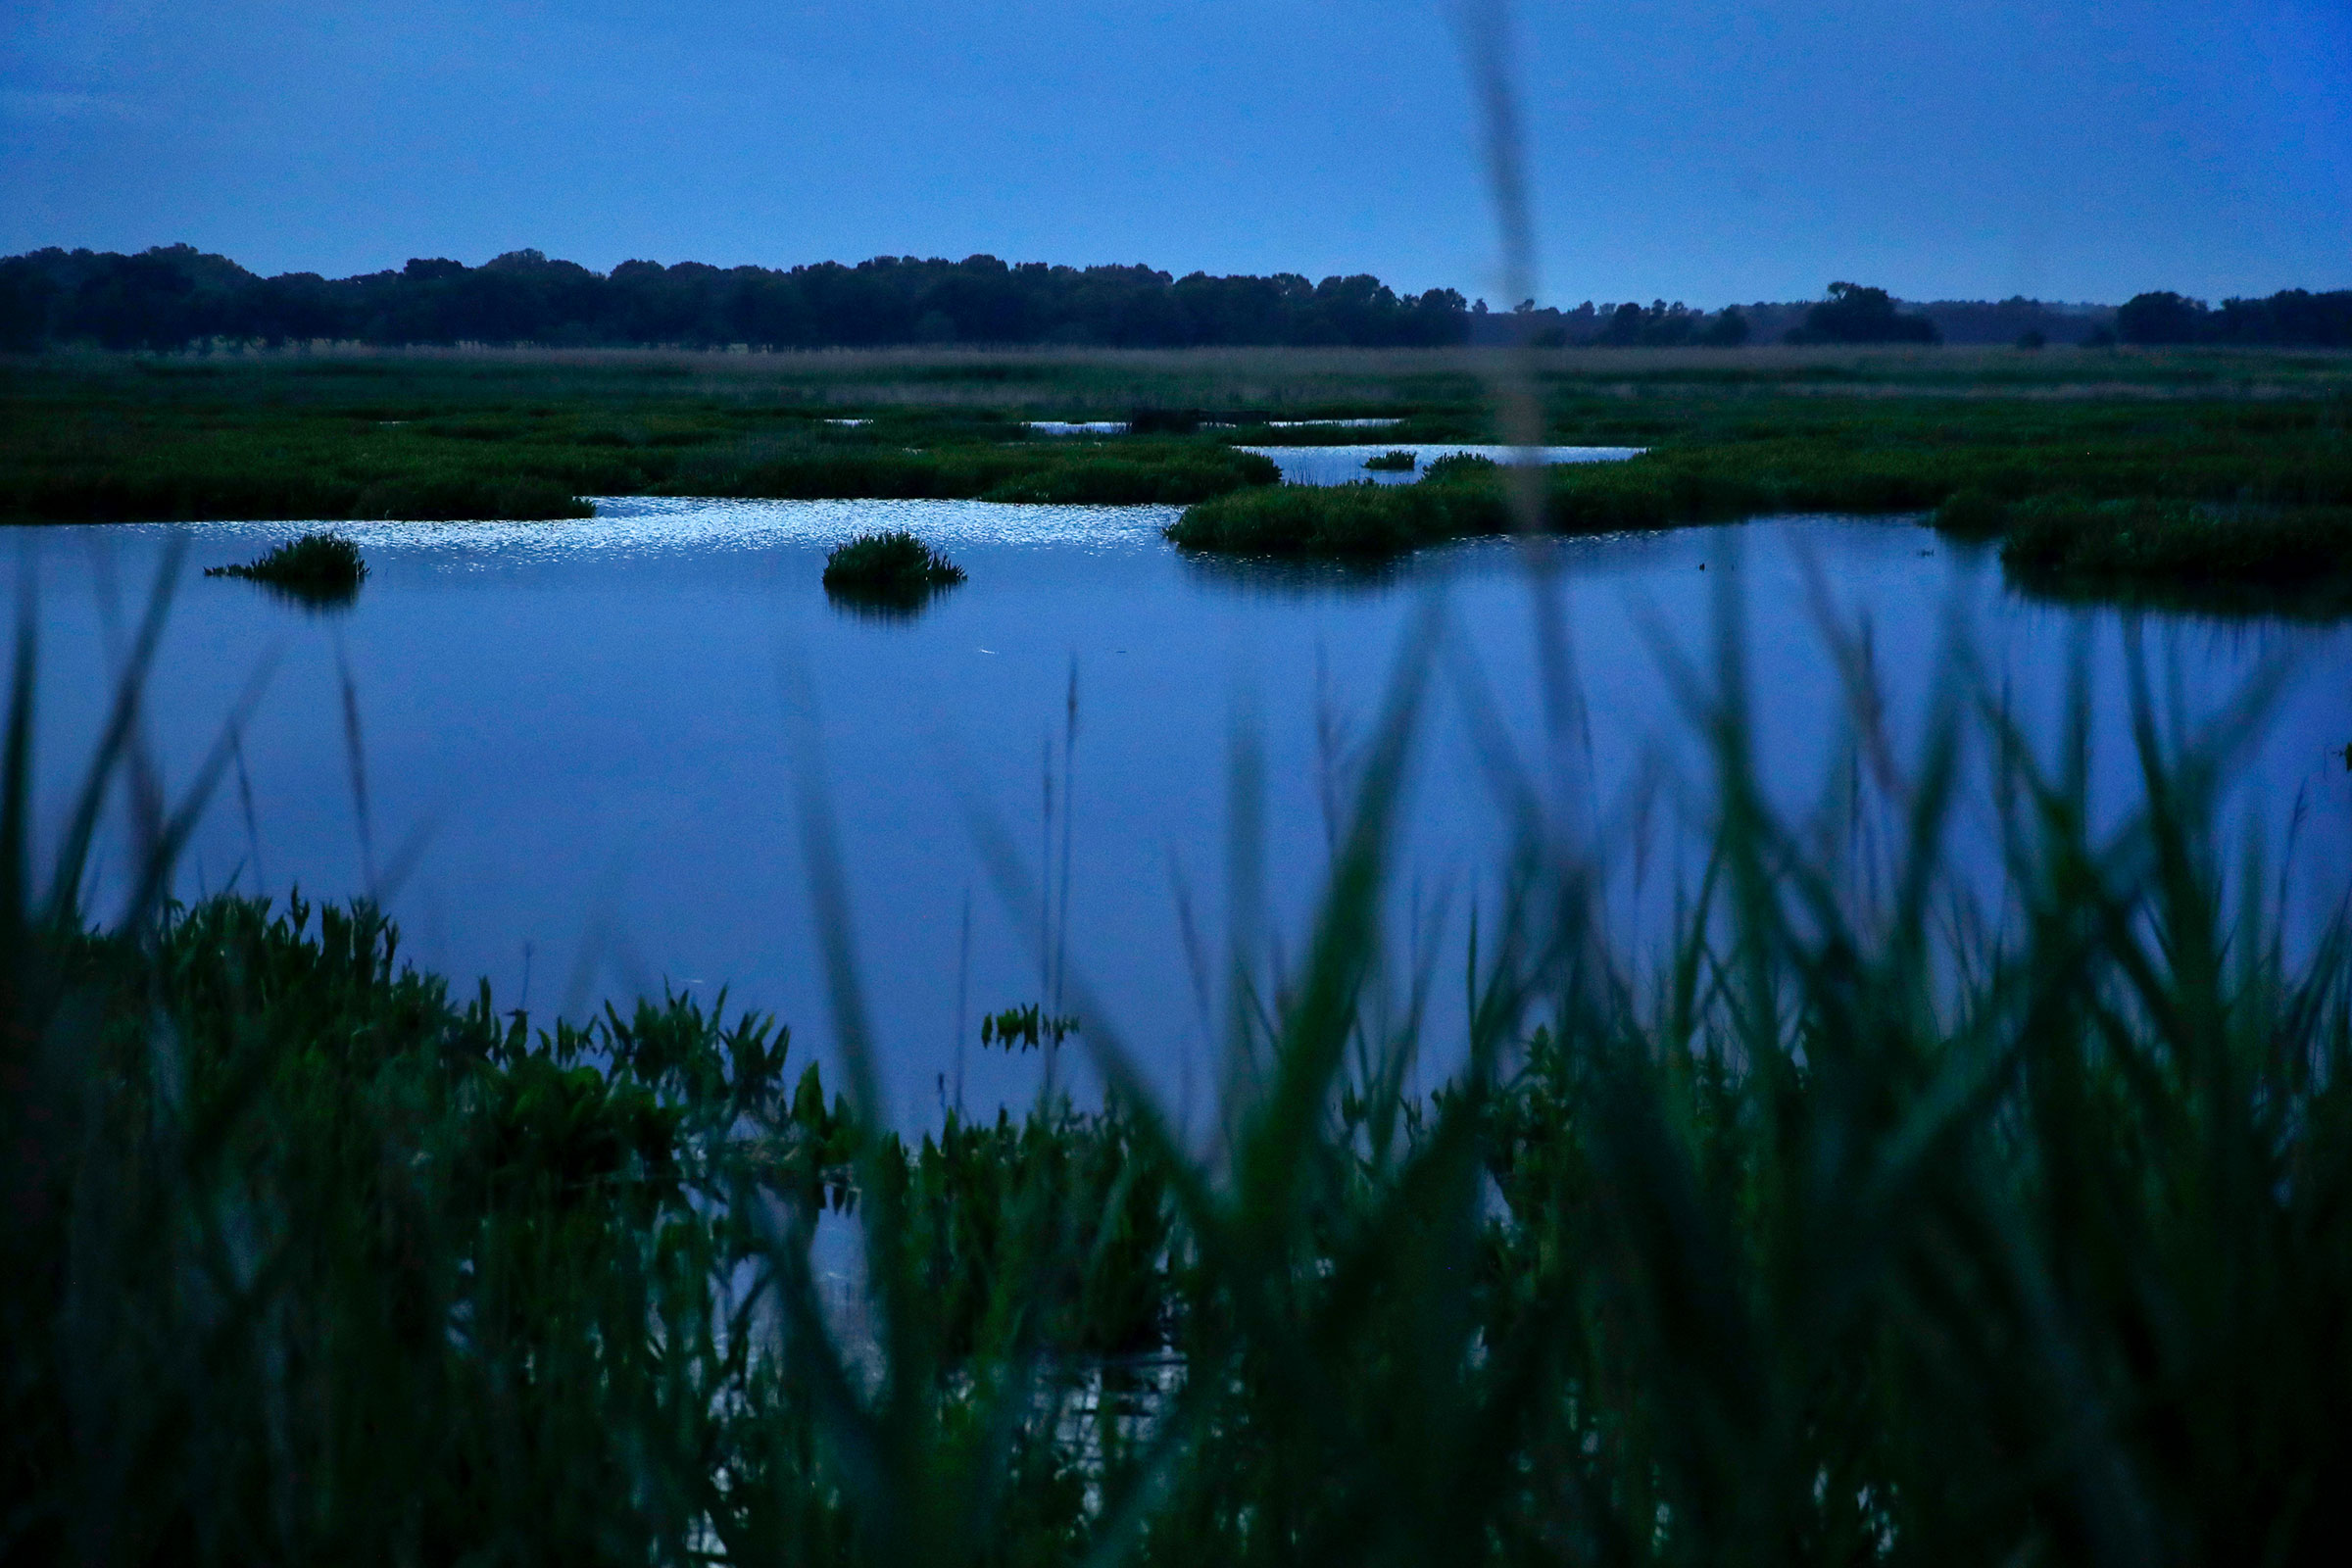 Wetlands along the Choptank River, Maryland. The Choptank and other waterways on Maryland's Eastern Shore played crucial roles in the Underground Railroad, both for transportation and as conduits of information. Patrick Semansky/AP